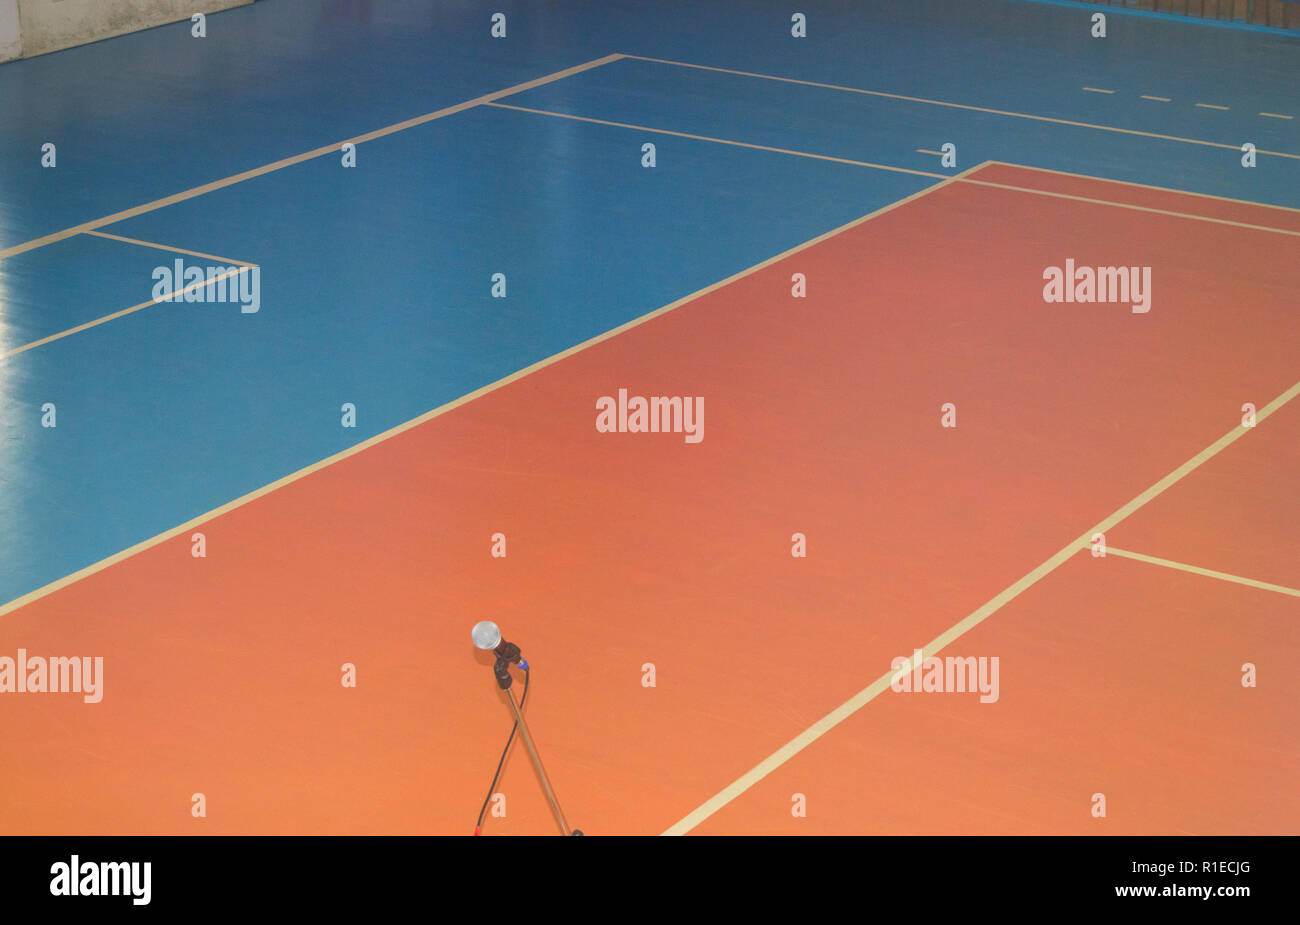 Empty sports training room with markings on the floor for competitions - Stock Image